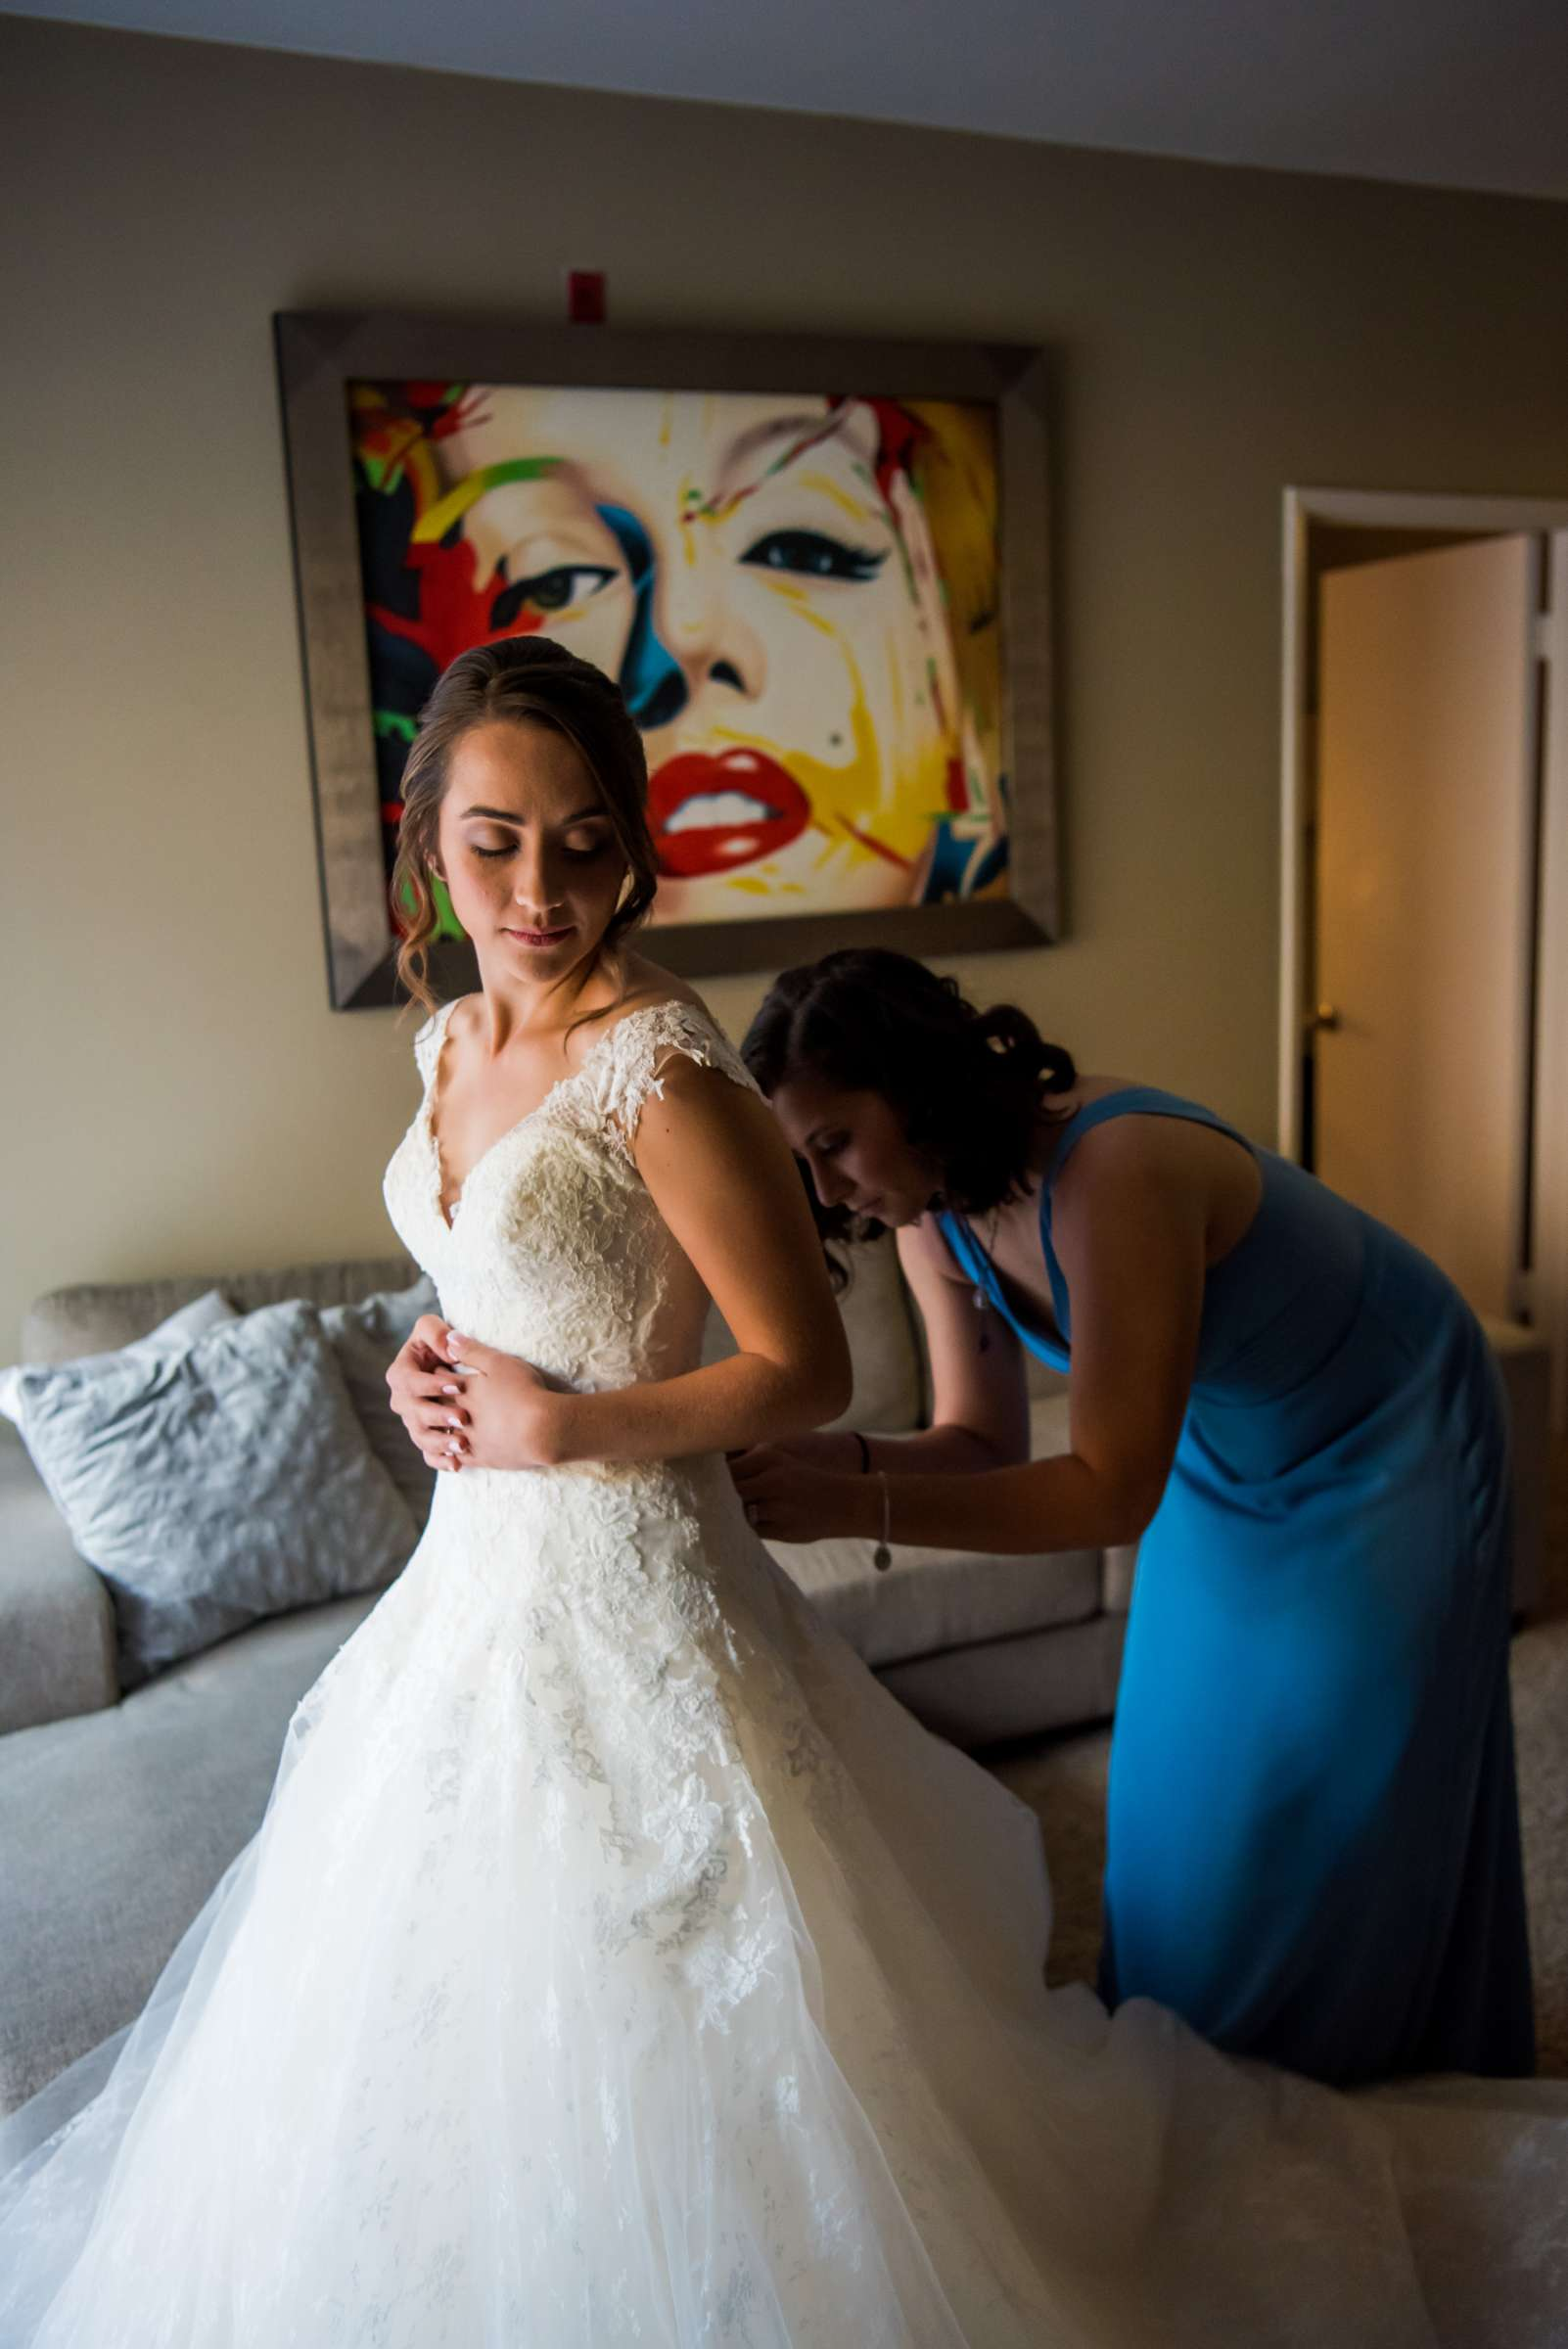 The Immaculata Wedding, Arianna and Jonah Wedding Photo #52 by True Photography